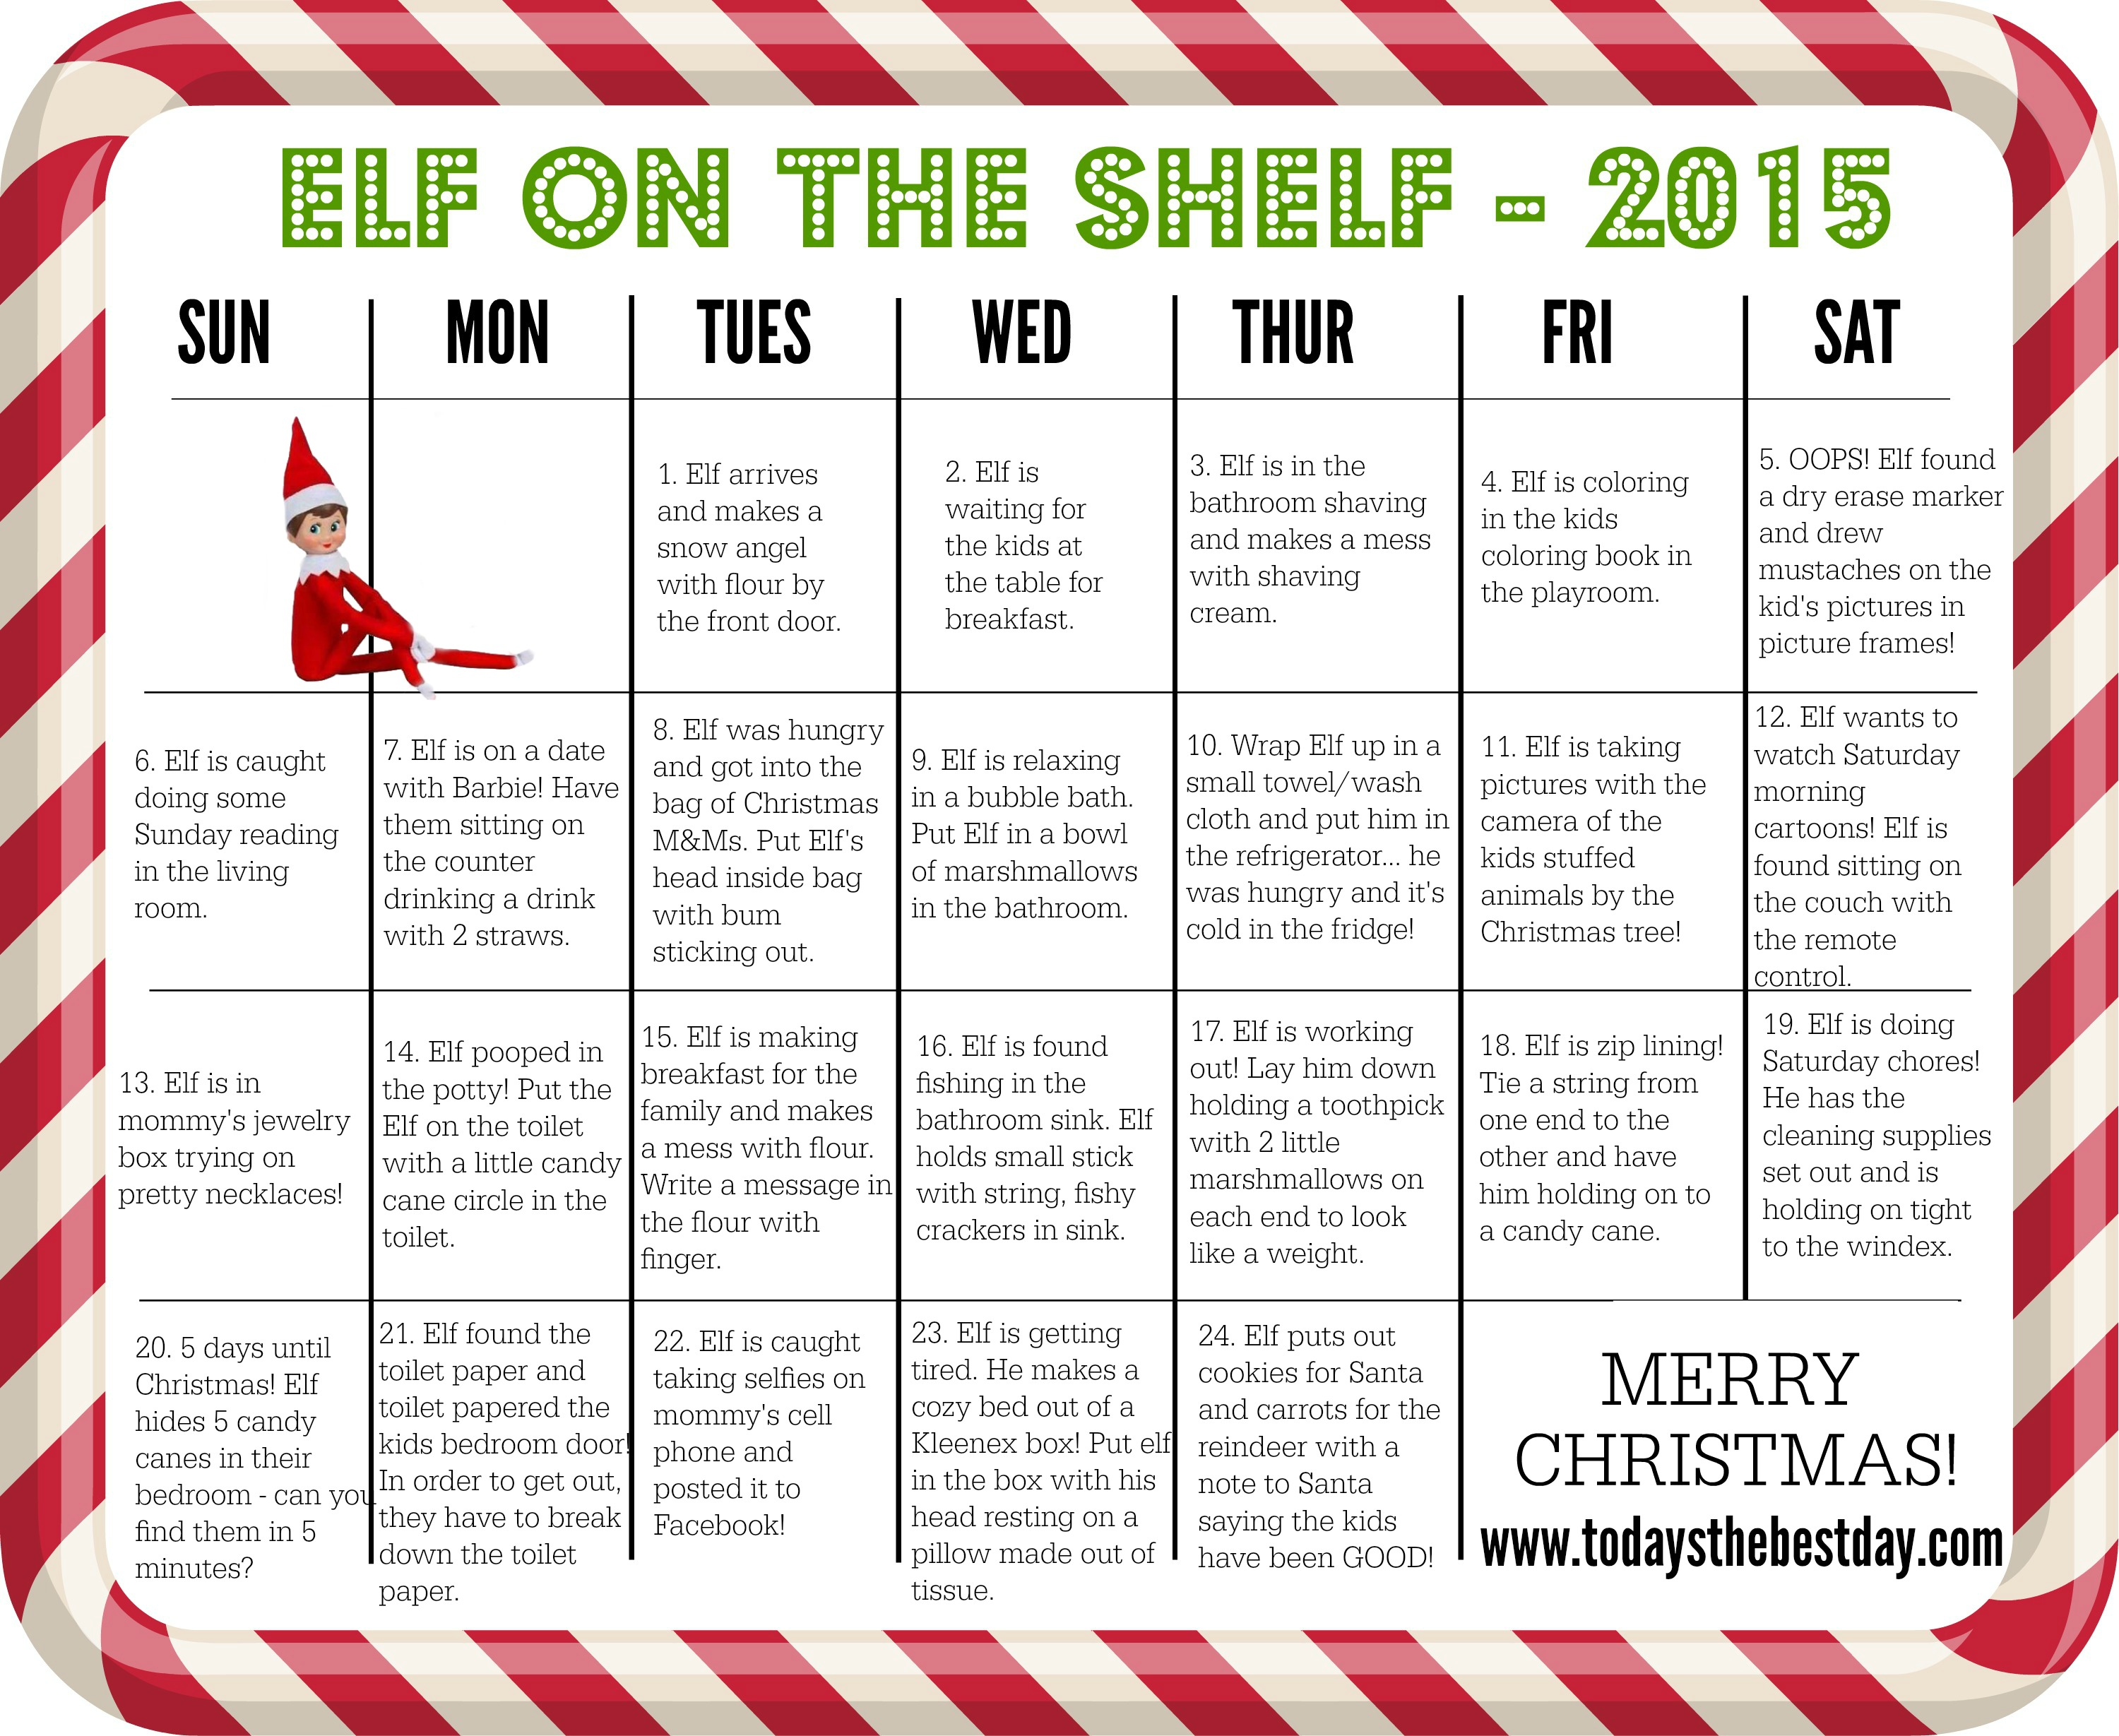 Elf on the Shelf – Ideas, Information and Calendar - Today\'s the ...